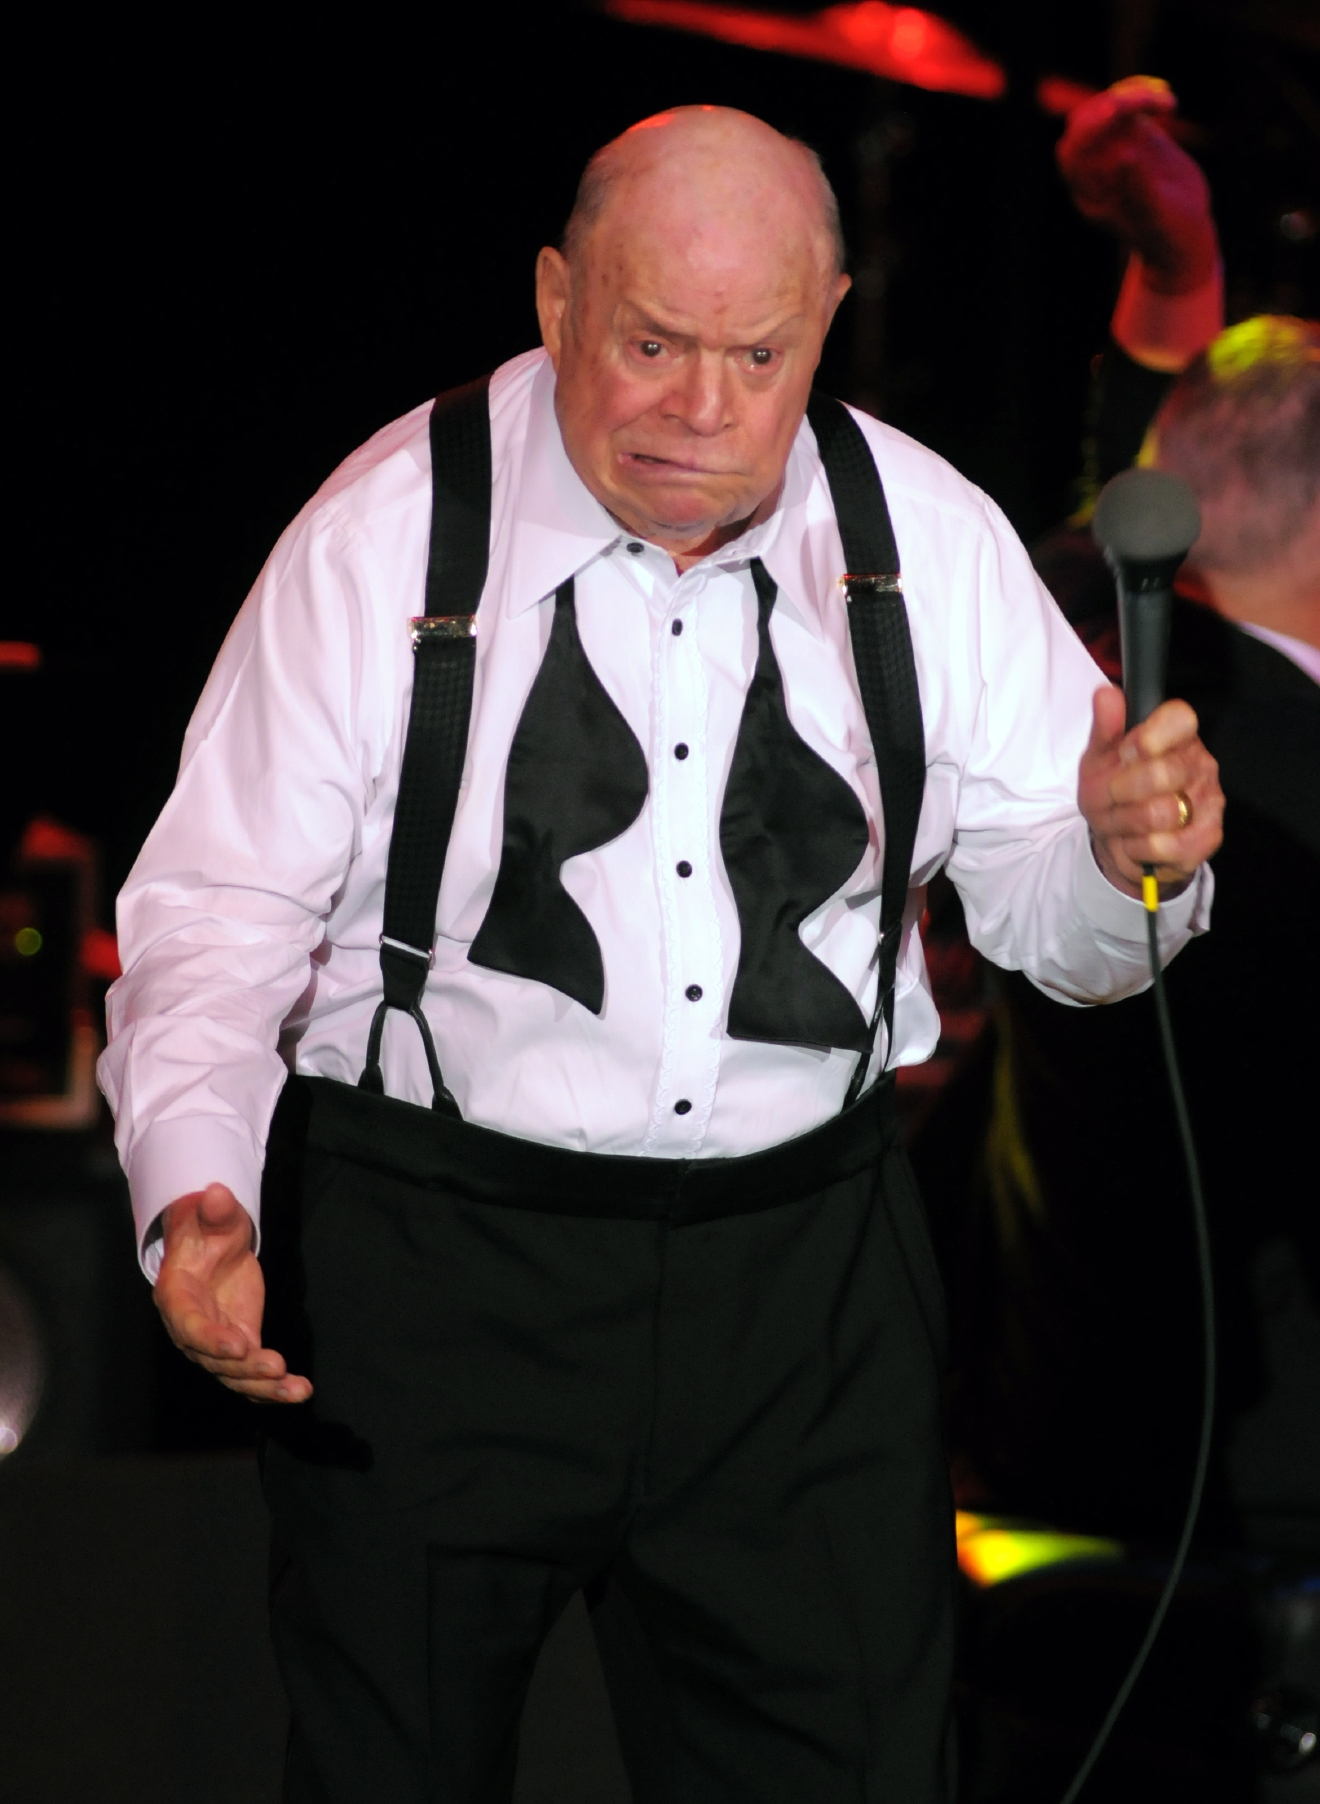 Comedian Don Rickles performs at the Orleans Hotel and Casino in Las Vegas Saturday, February 20, 2010. [Las Vegas News Bureau file | Brian Jones]